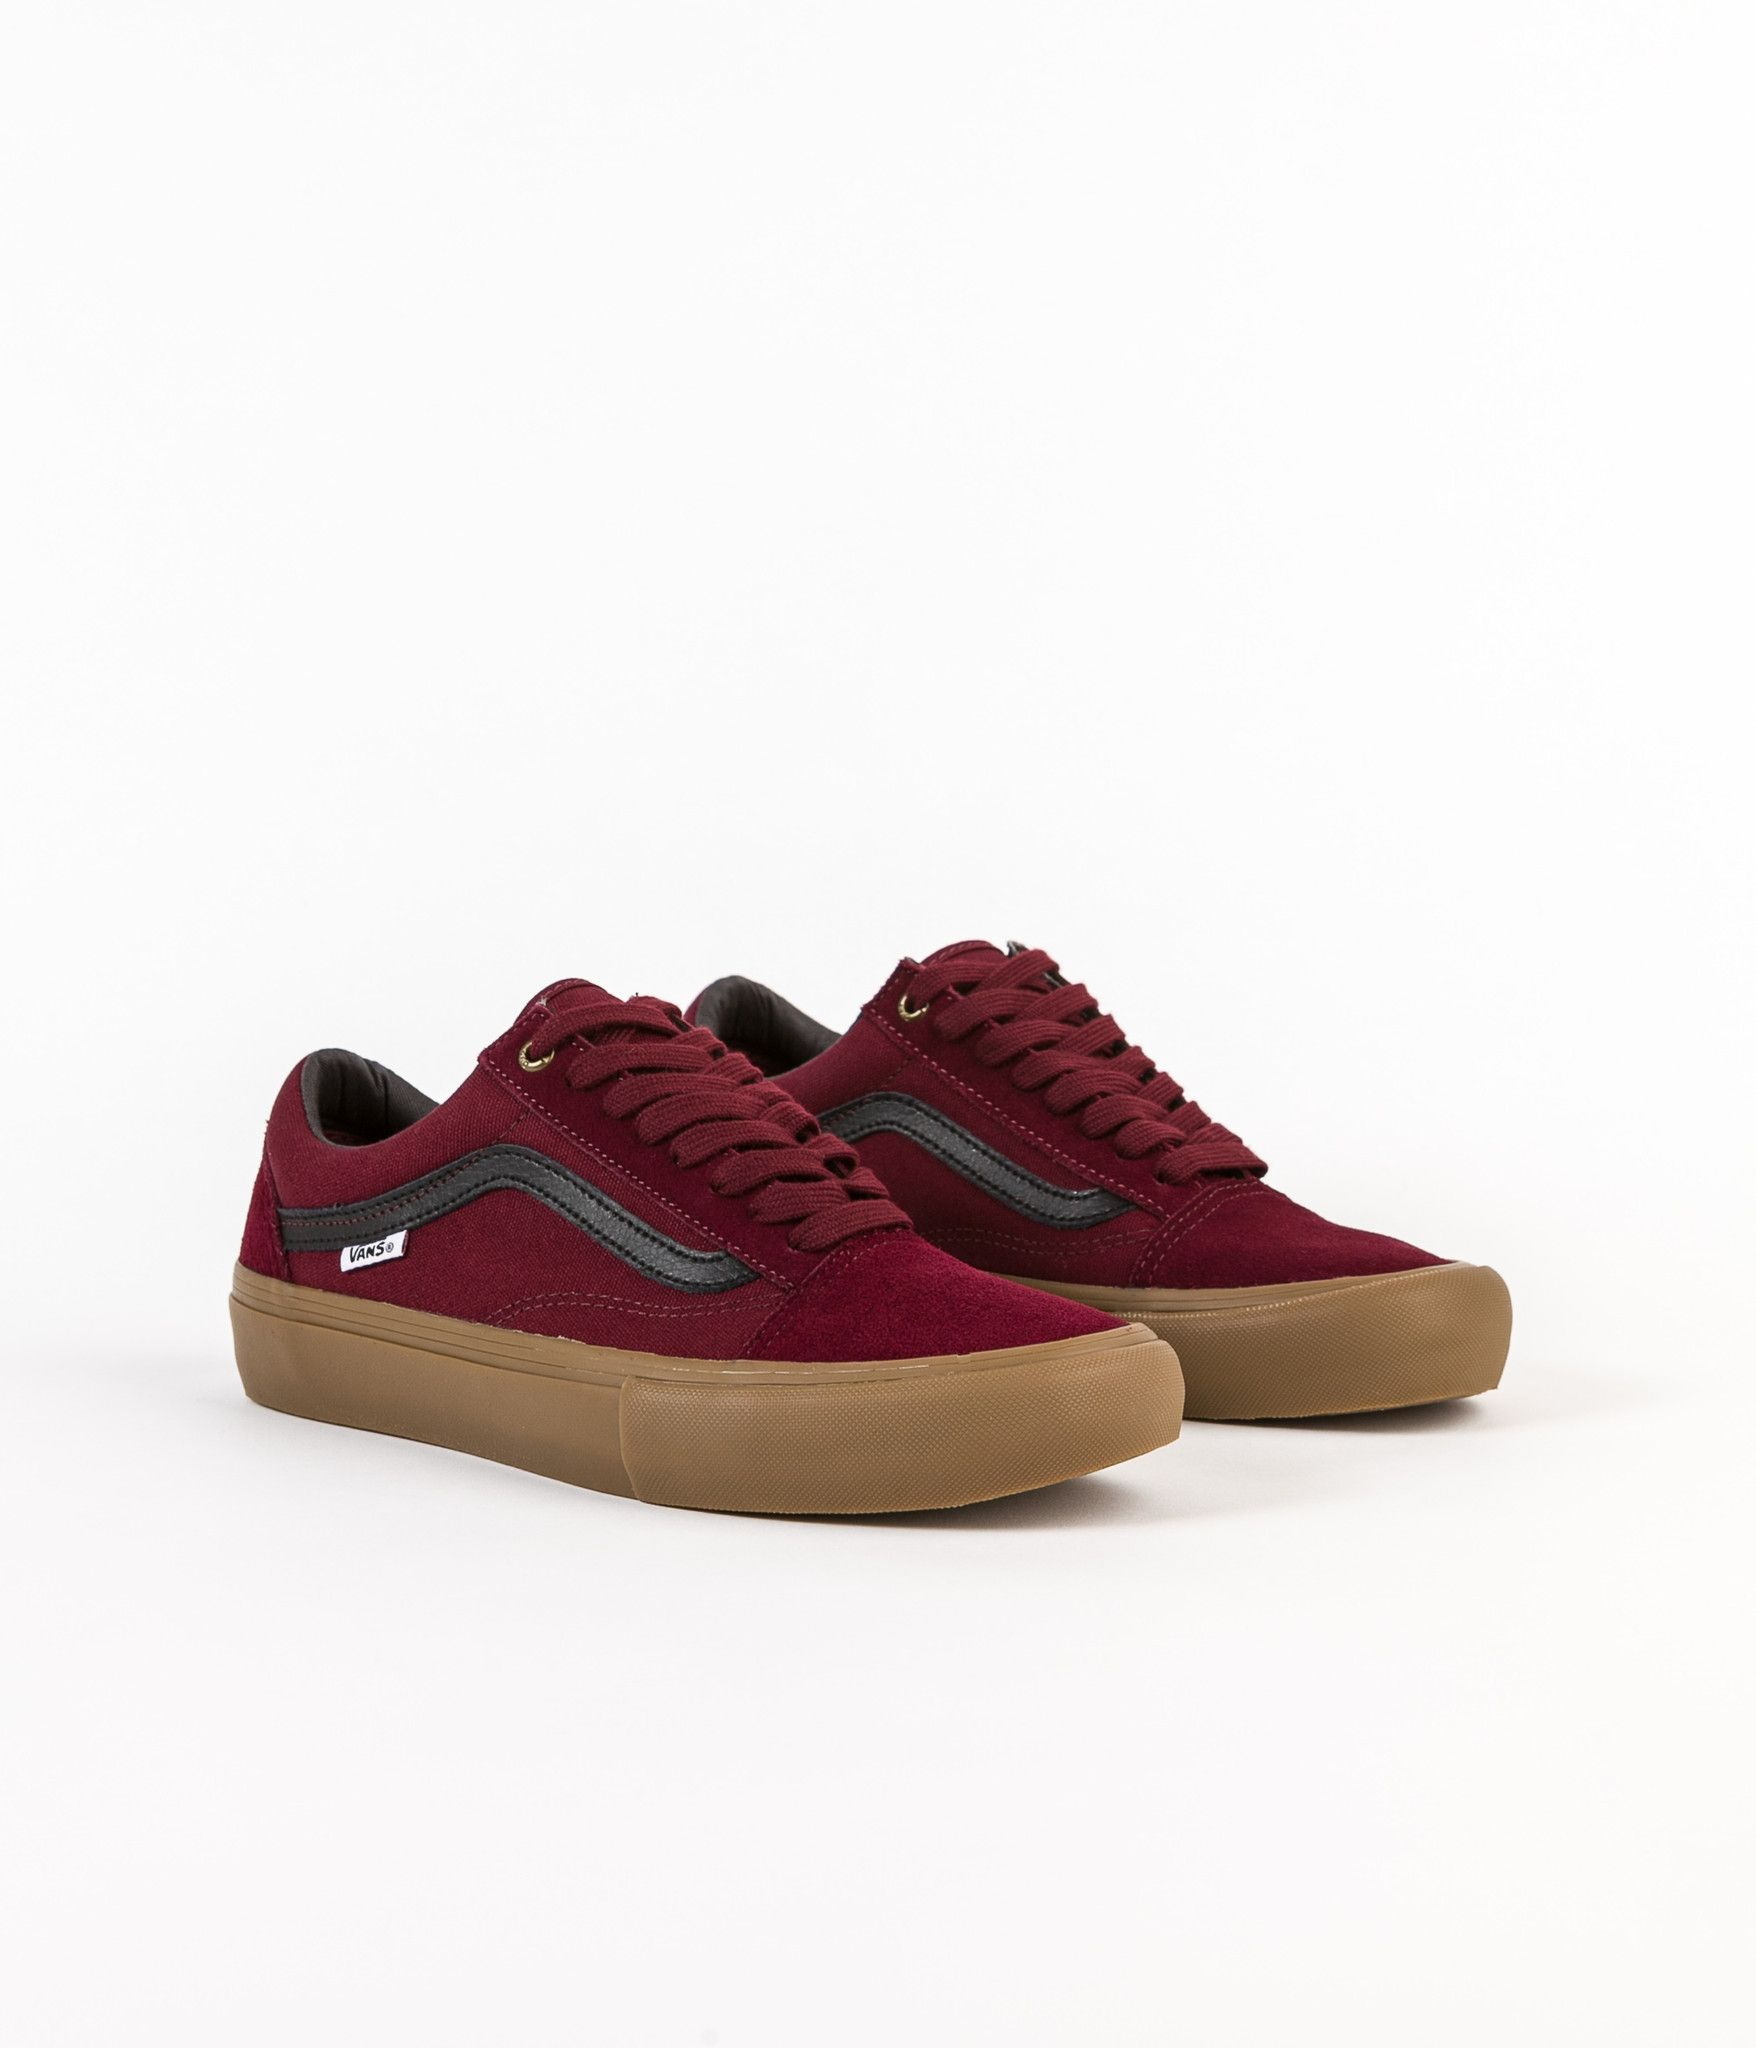 Dominguear Pro Black Shoes Port Skool Vans Para Old Gum aqOH1w8